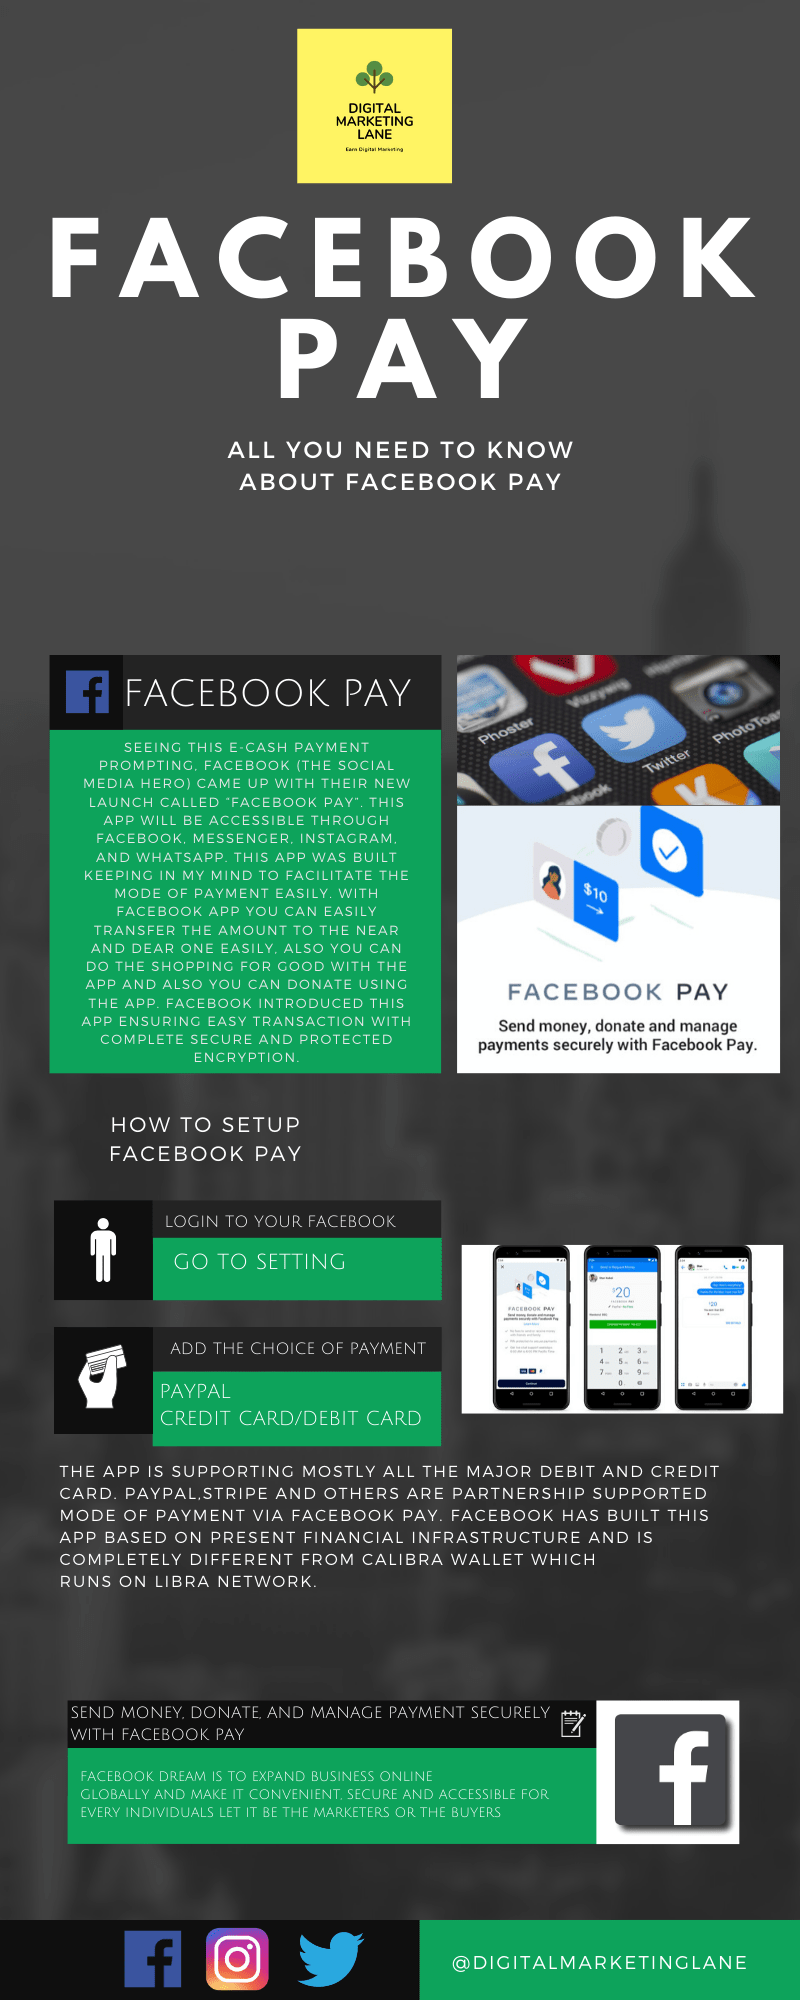 Facebook Pay App details to set up Facebook Pay and start payments using Facebook Pay App